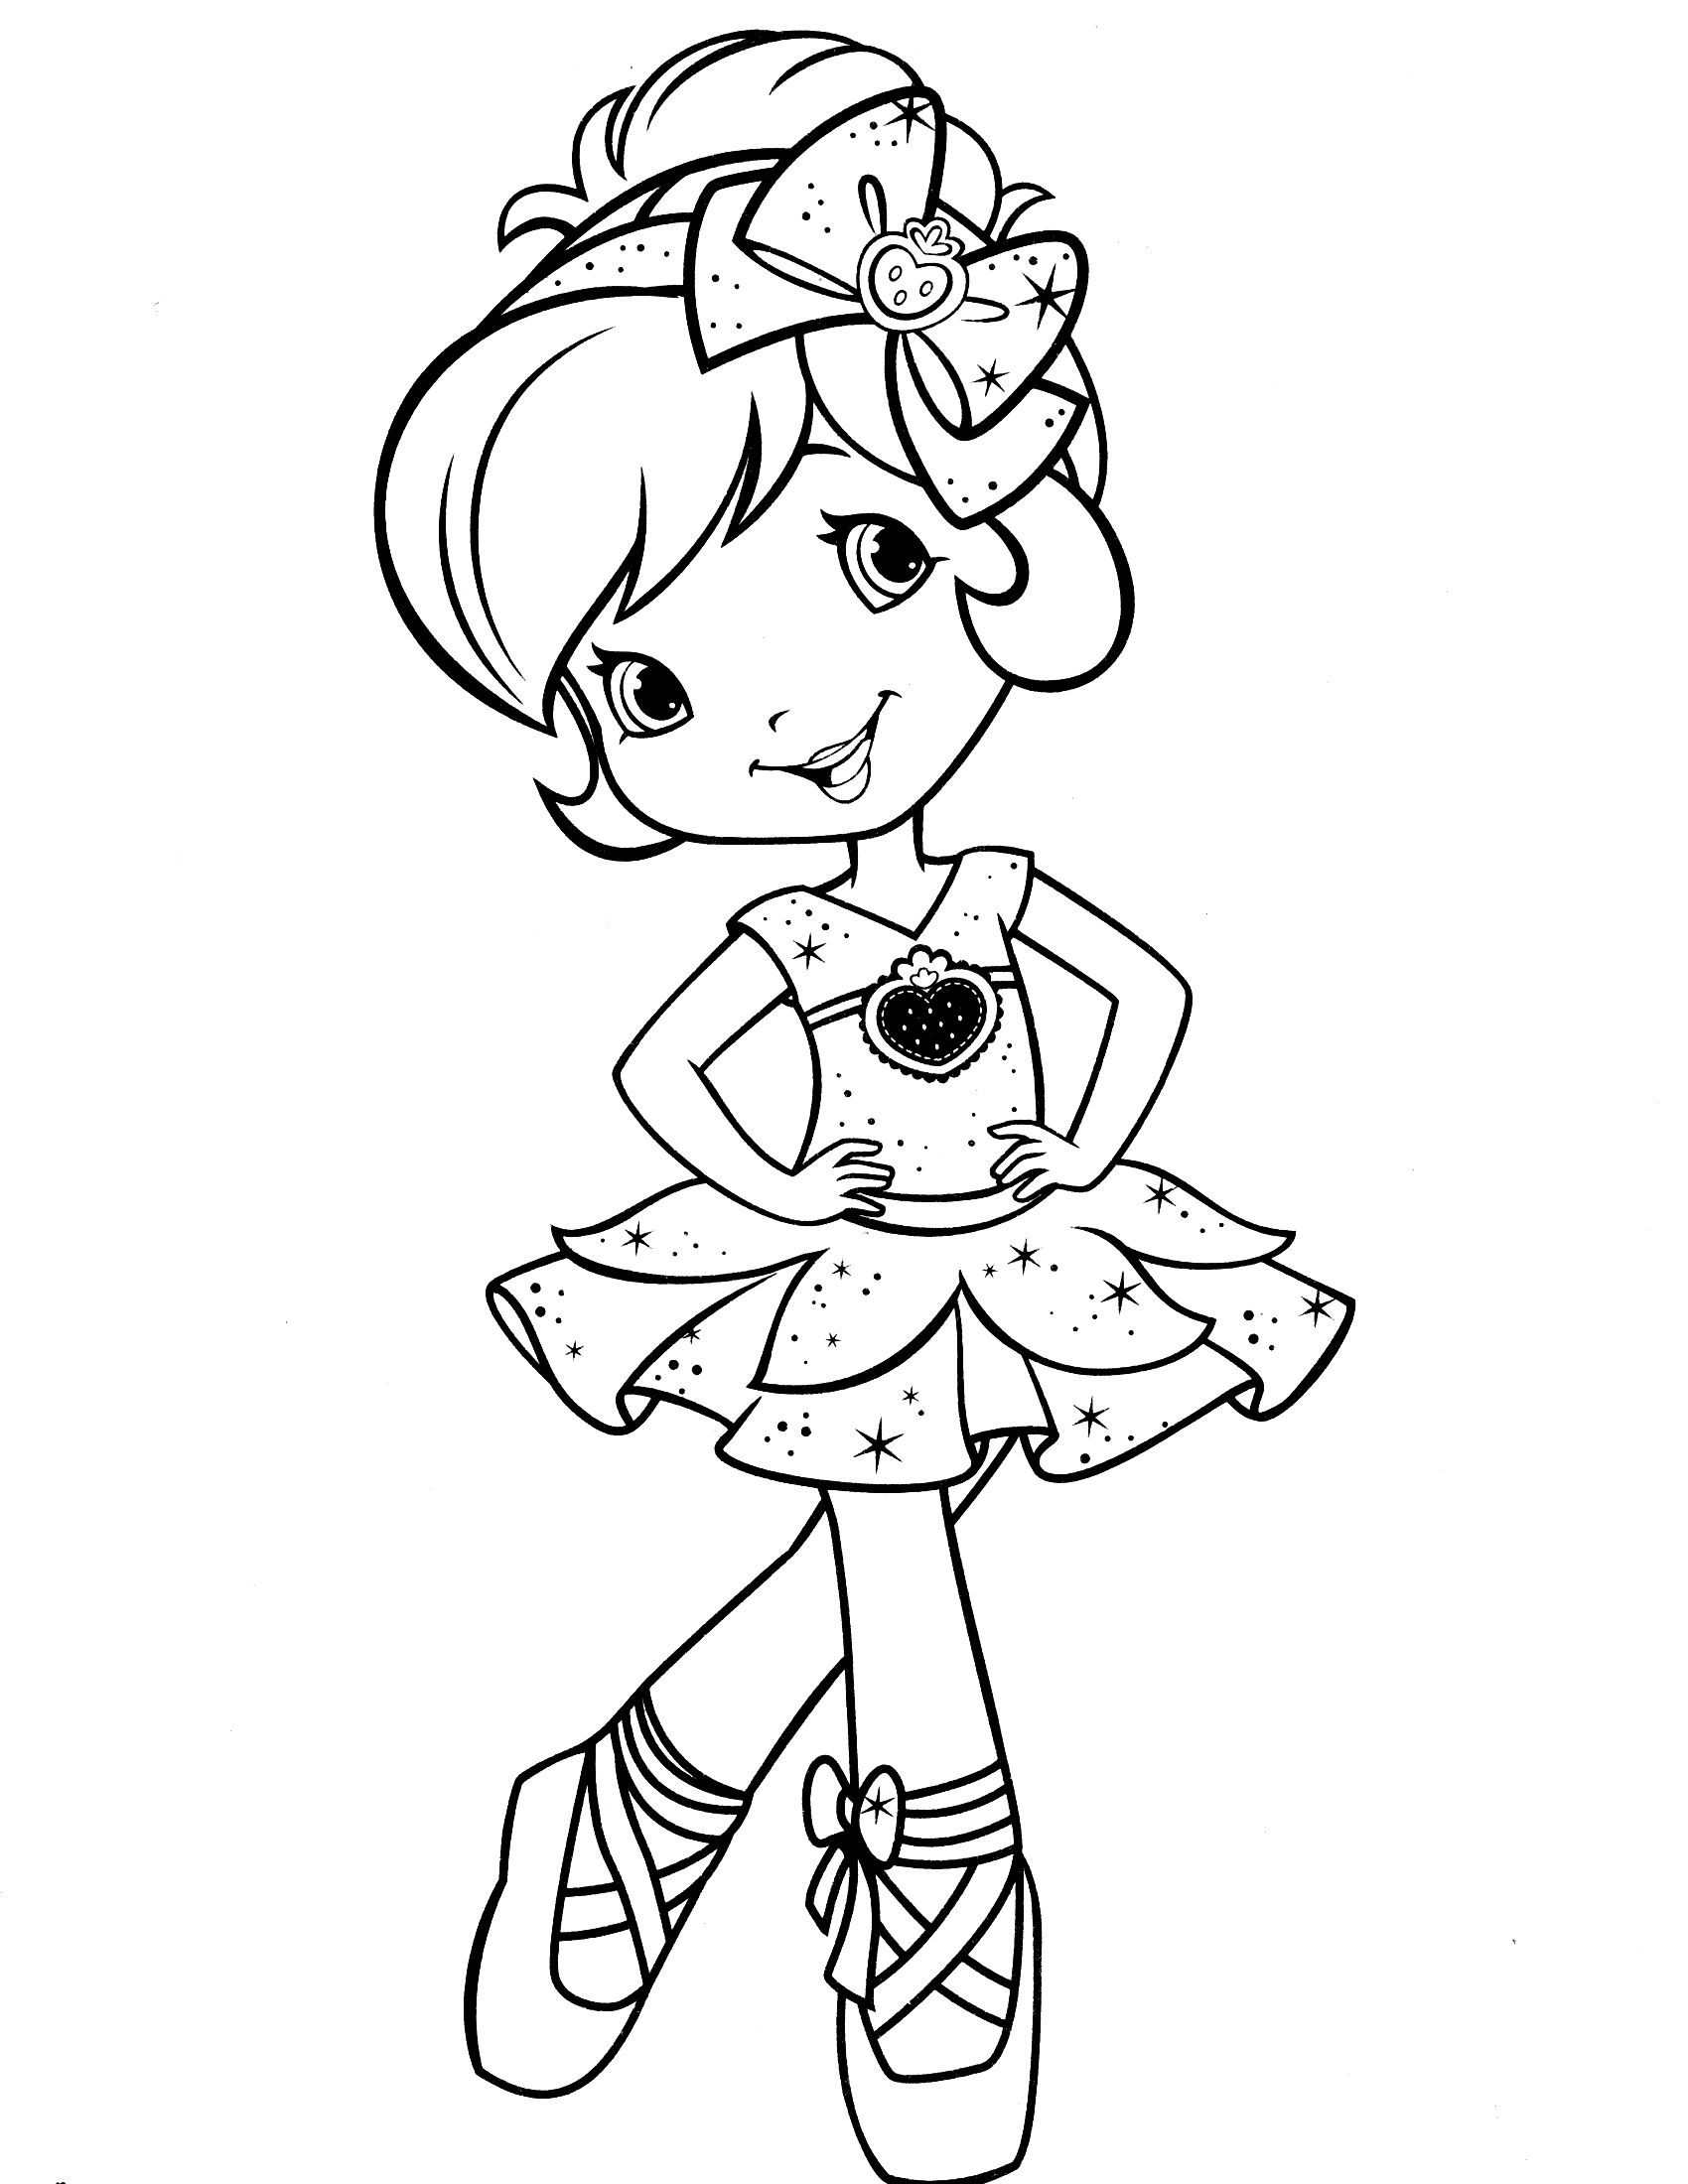 strawberry shortcake coloring page    Pinterest